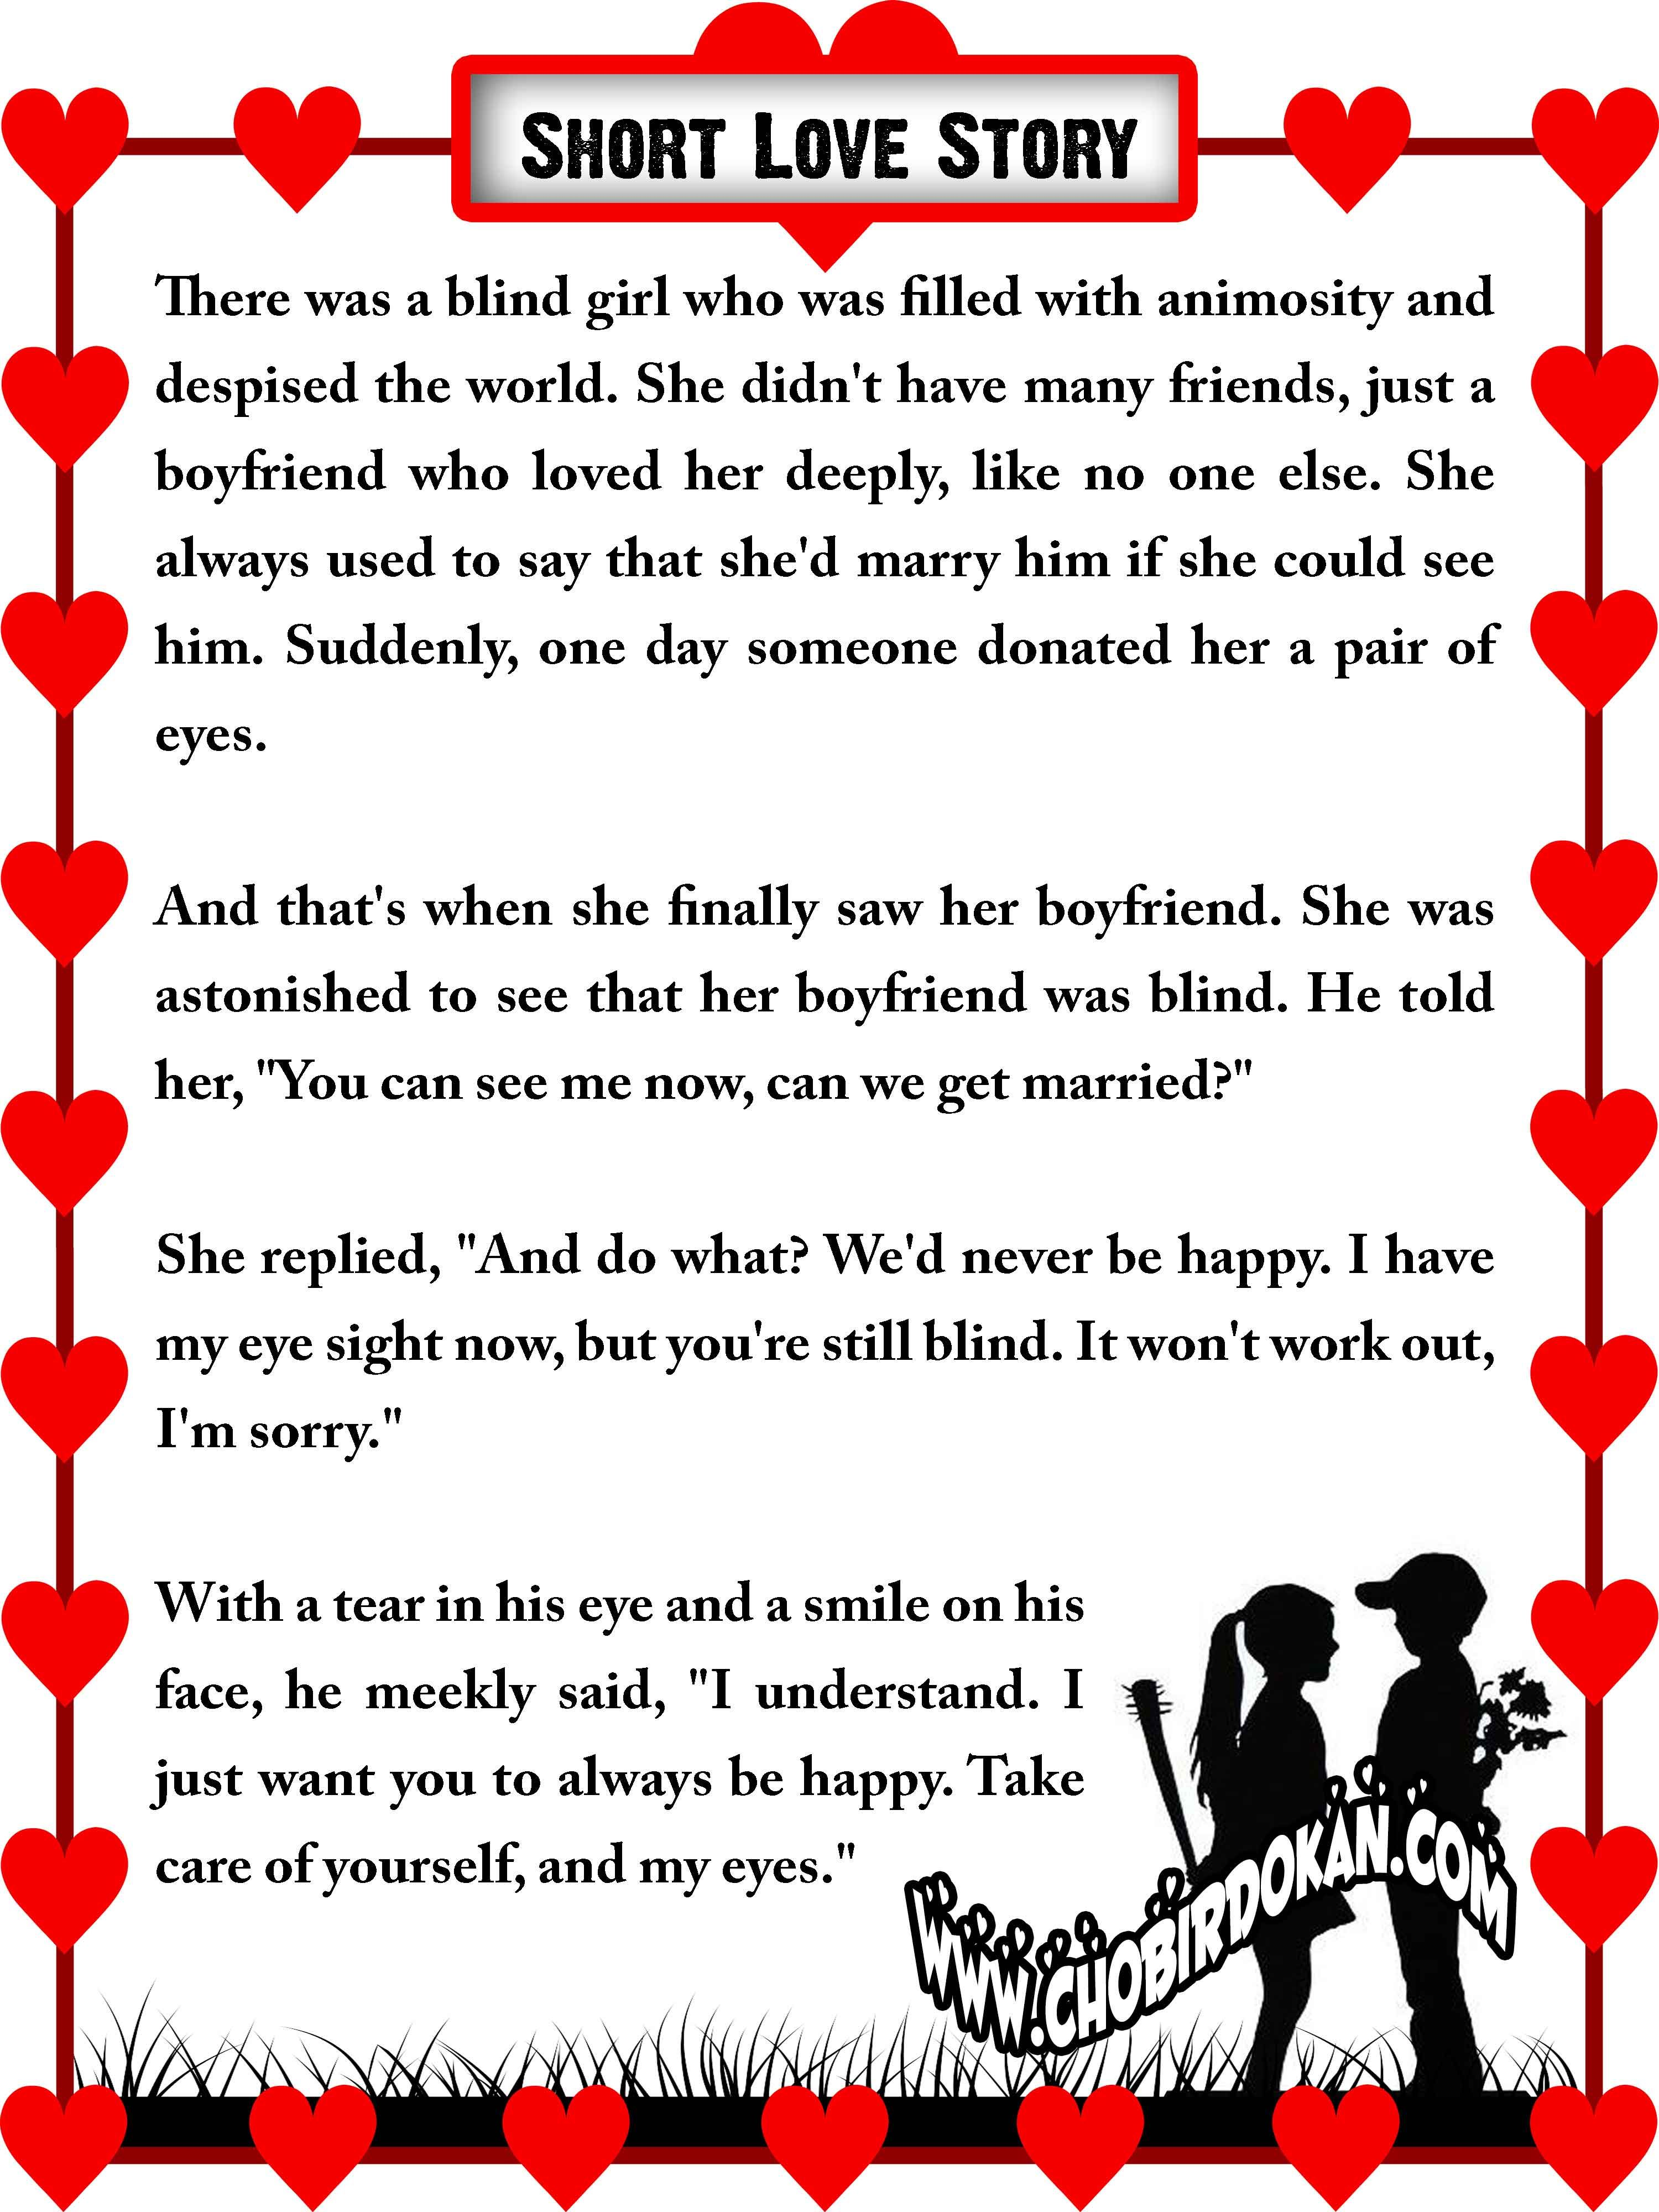 What do you think of this short story?